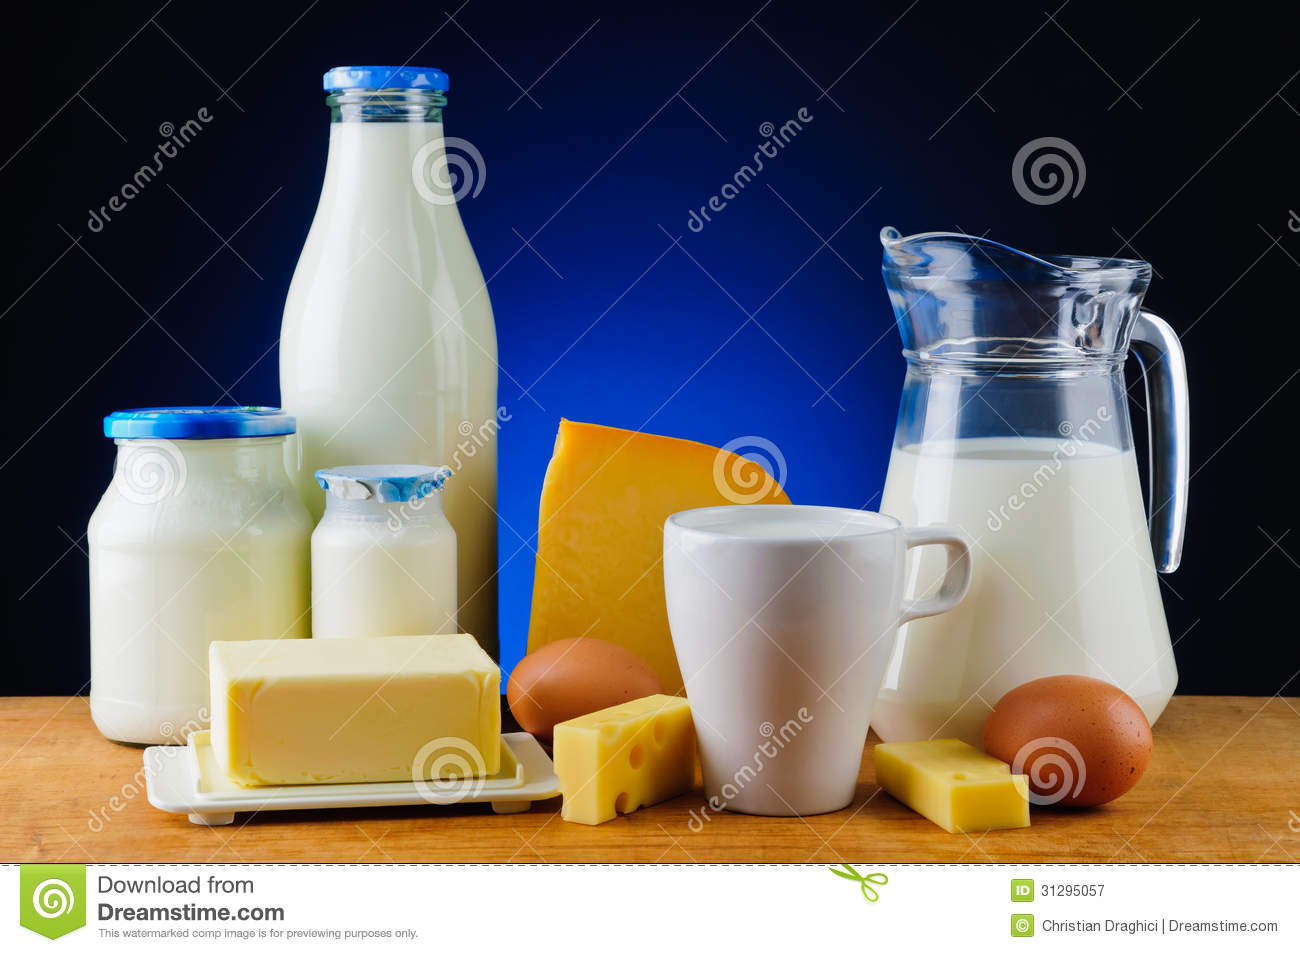 """milk and vietnam dairy products The vietnam ministry of agriculture and rural development is targeting an increase in exports of 3% in 2018 to reach $40bn, roughly half of which will come from """"cultivated products"""" such as dairy."""